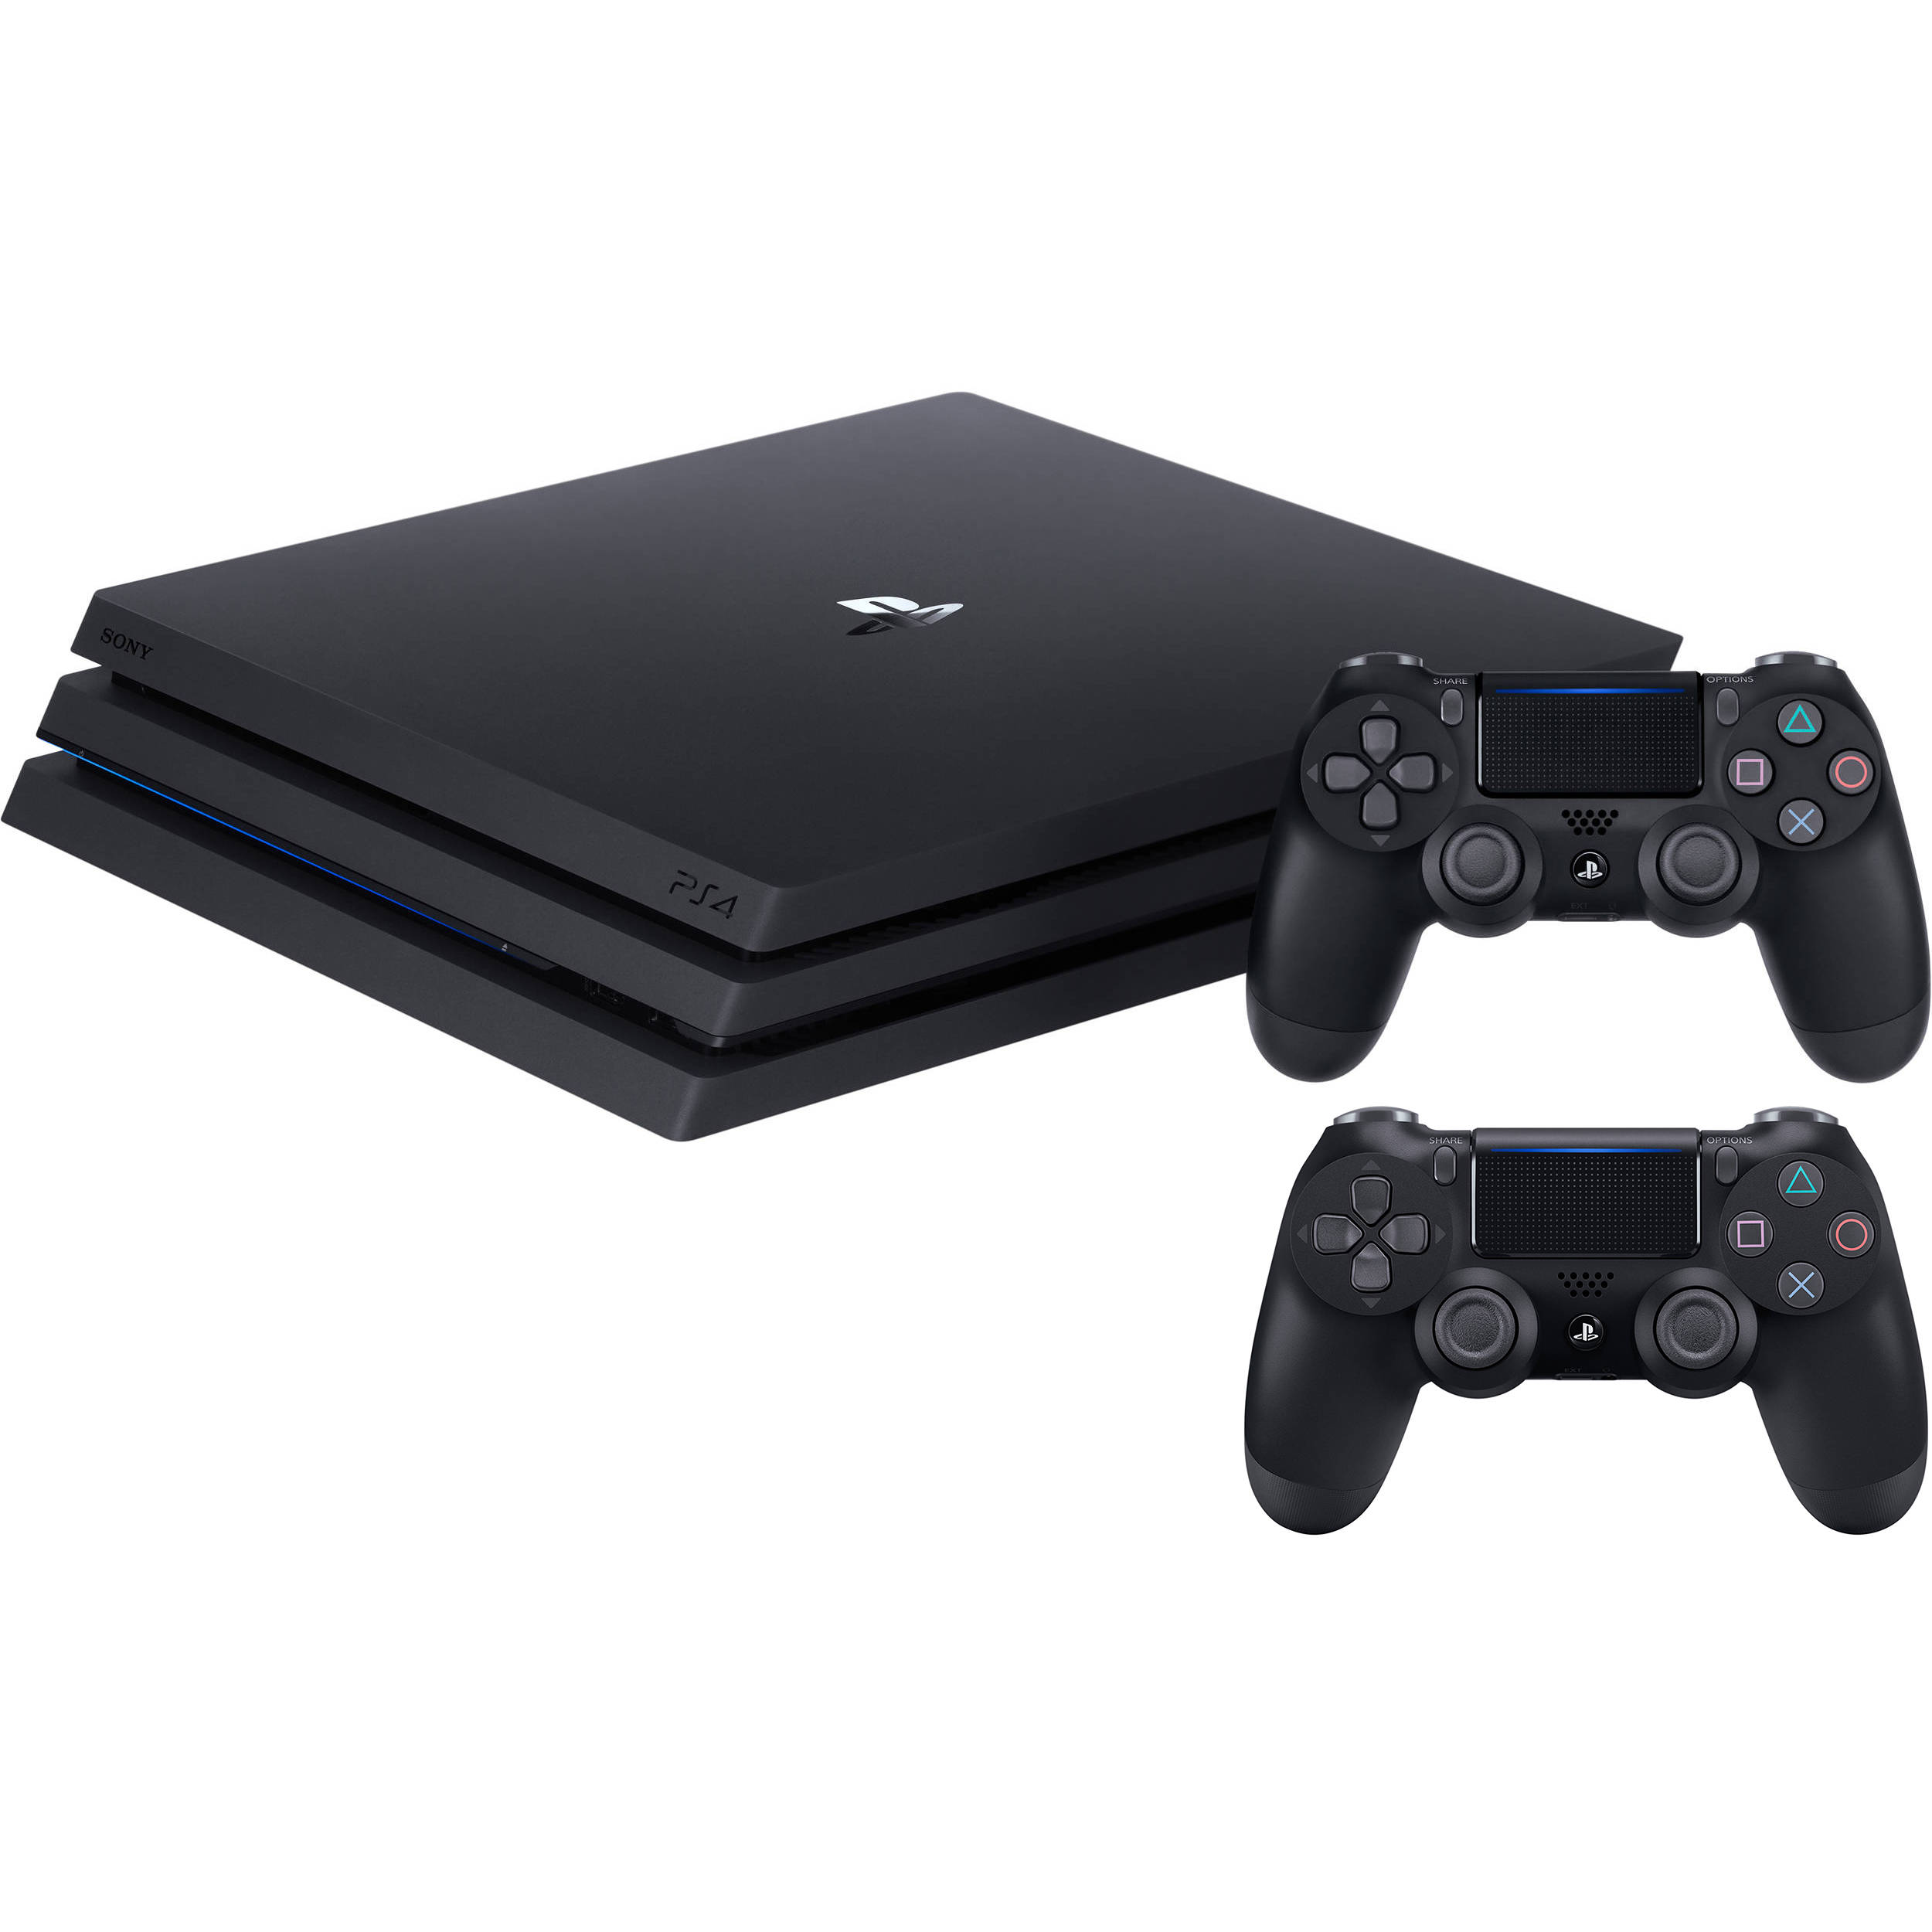 Sony PlayStation 4 Pro Gaming Console